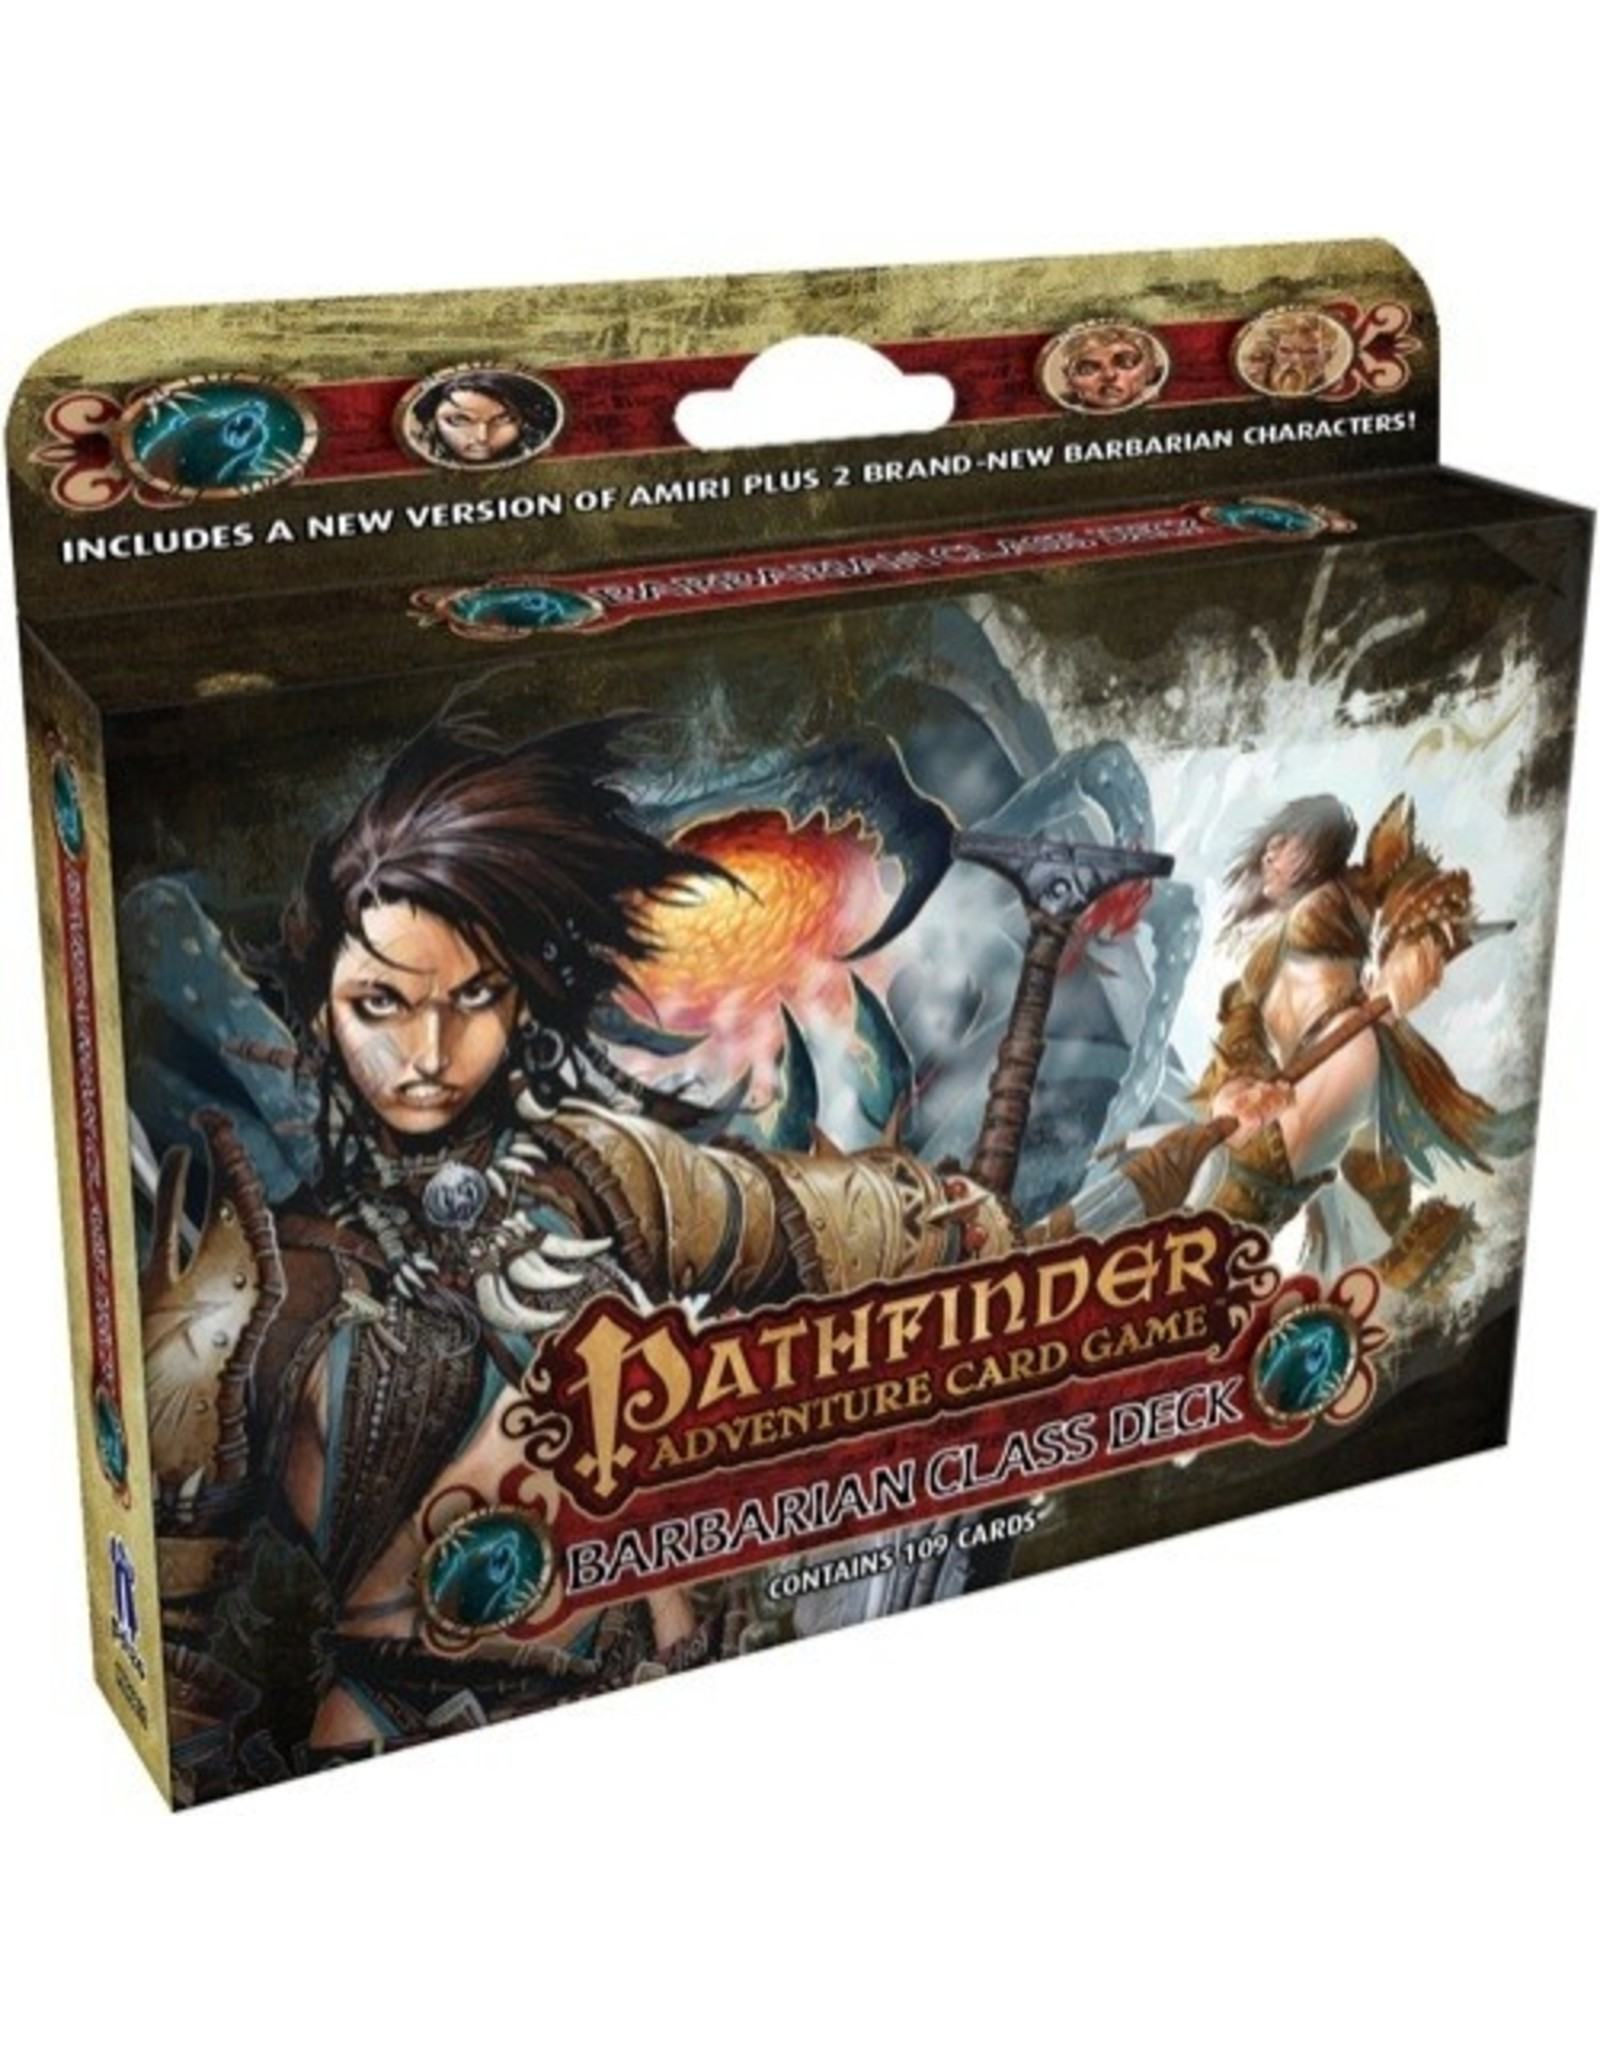 Pathfinder Adventure Card Game: Class Deck - Barbarian